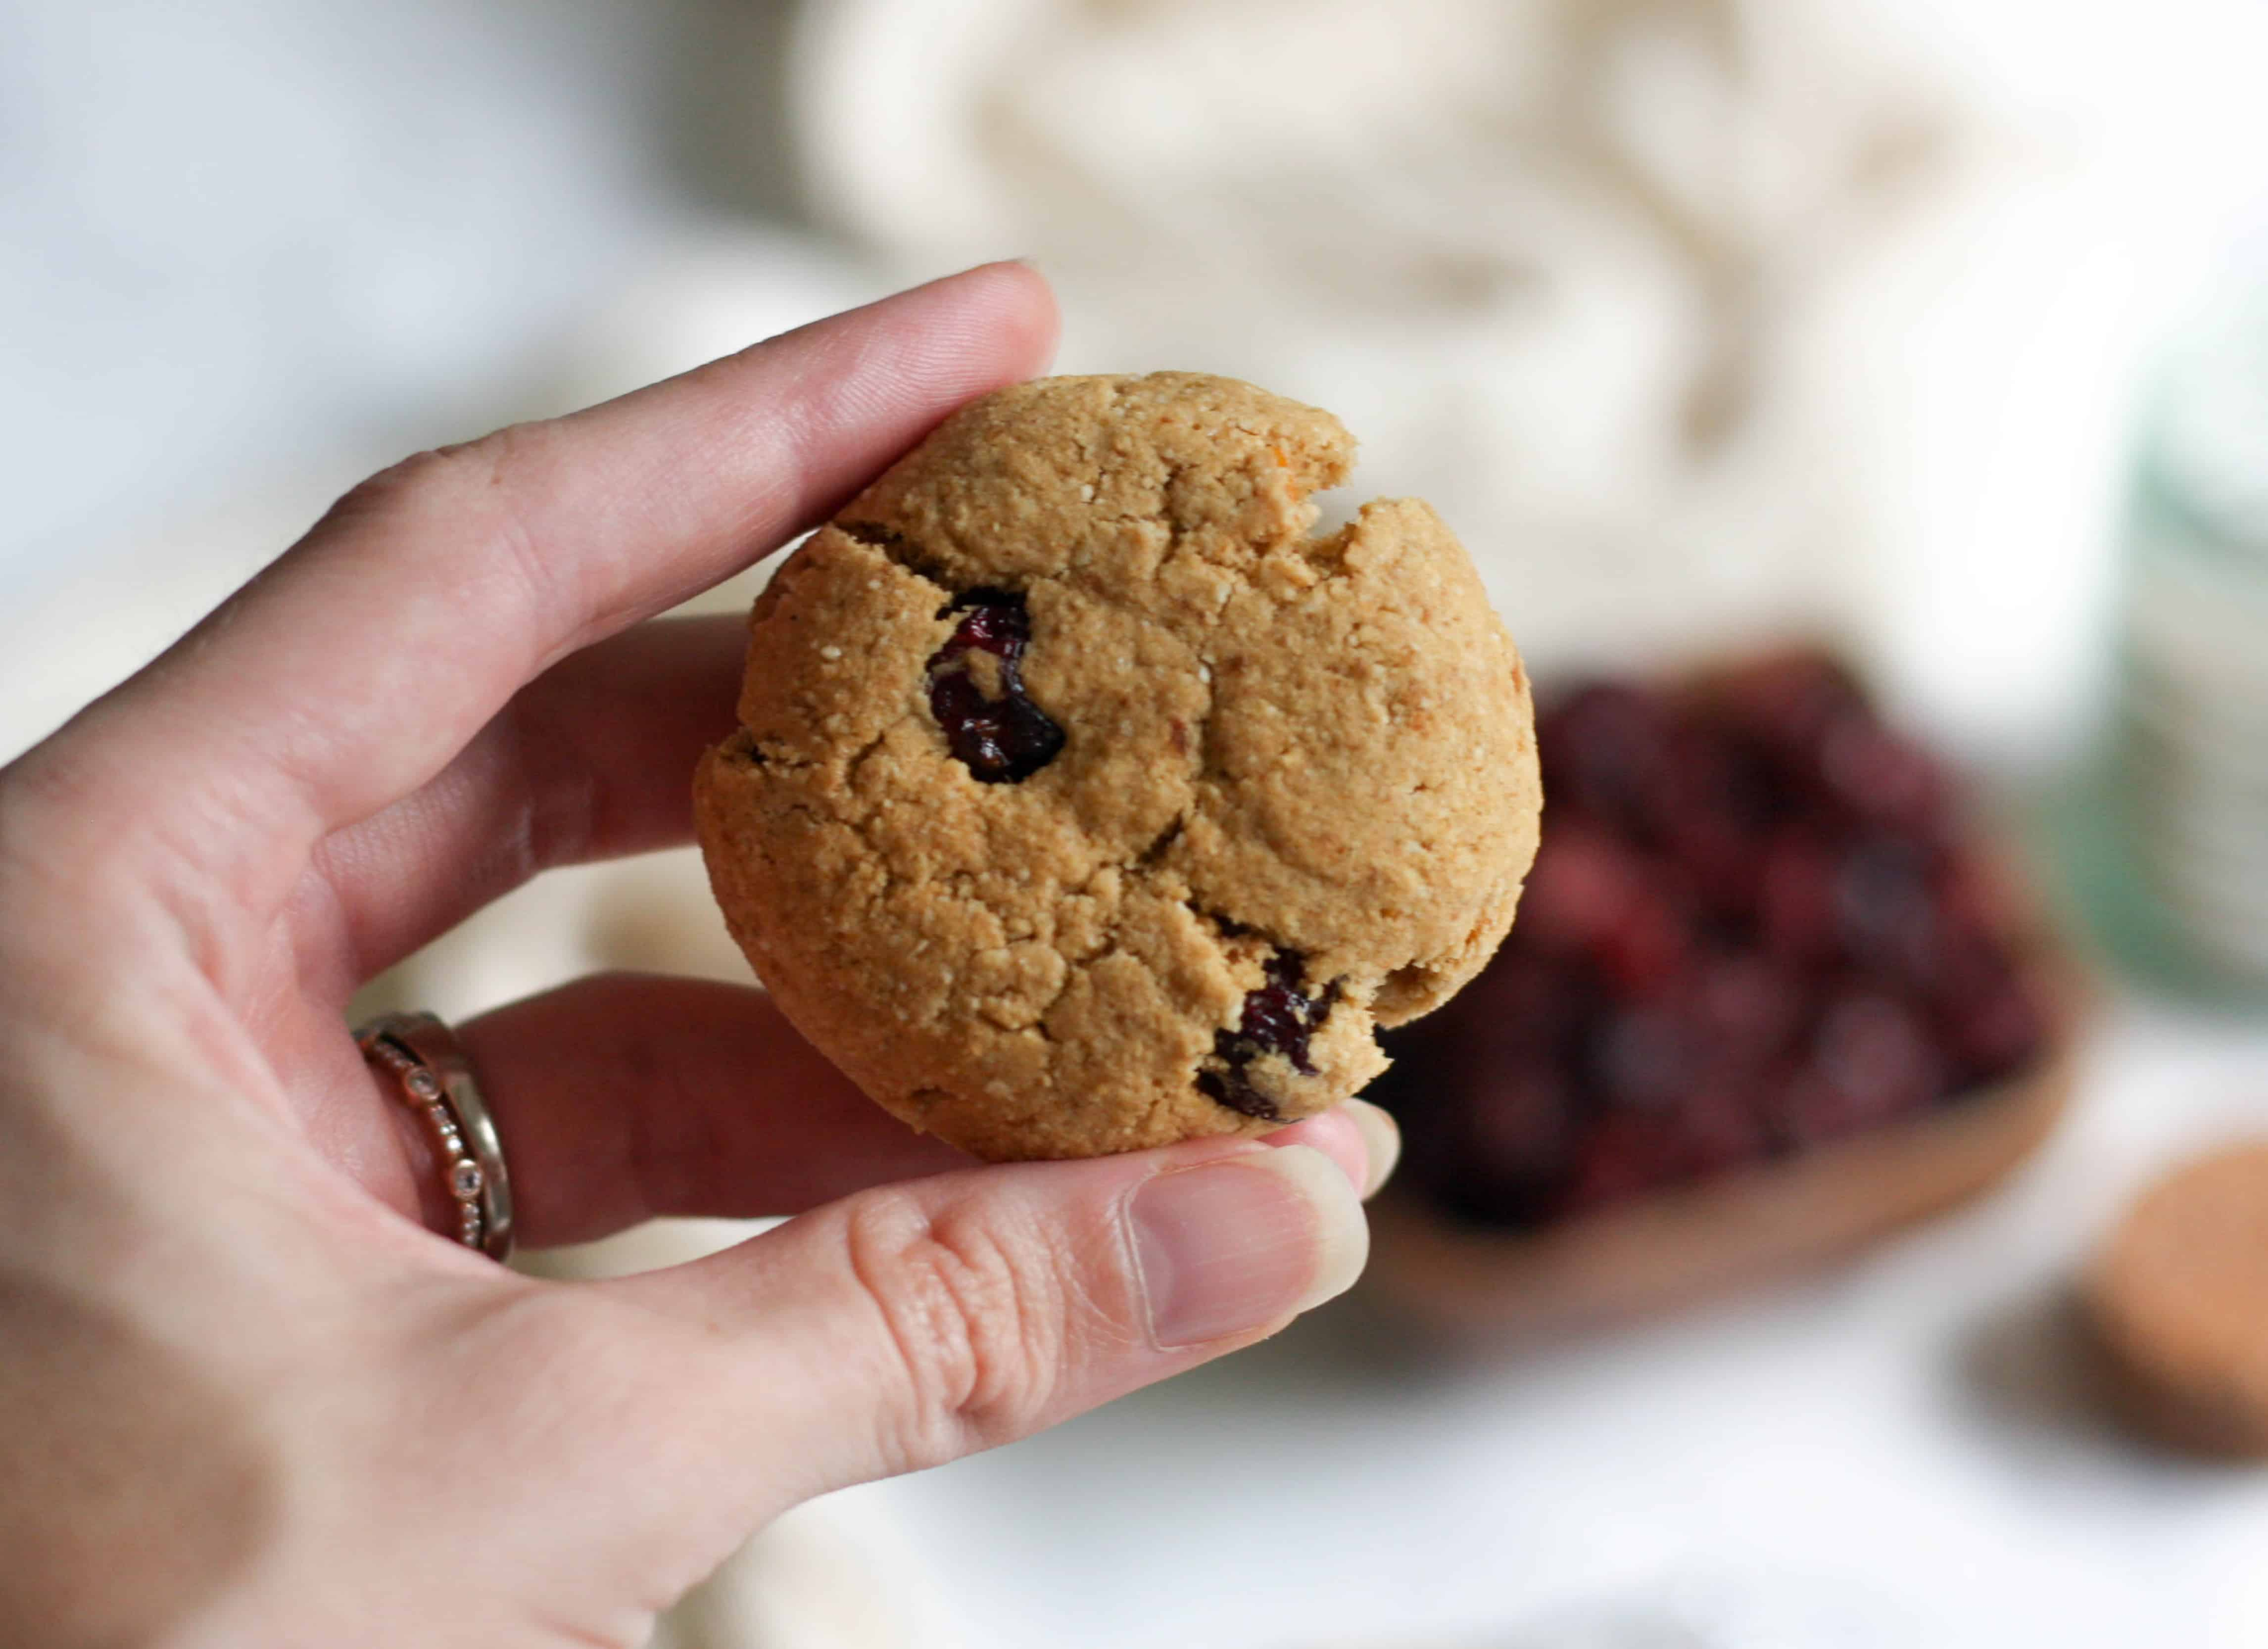 Paleo and AIP Cranberry Orange cookies! A healthier version of the classic holiday treat. These Cranberry Orange Cookies have a lightly sweet buttery taste with a fluffy inside and crunchy outside. Grain free, gluten free, AIP and paleo friendly! Simple to make in 30 minutes.